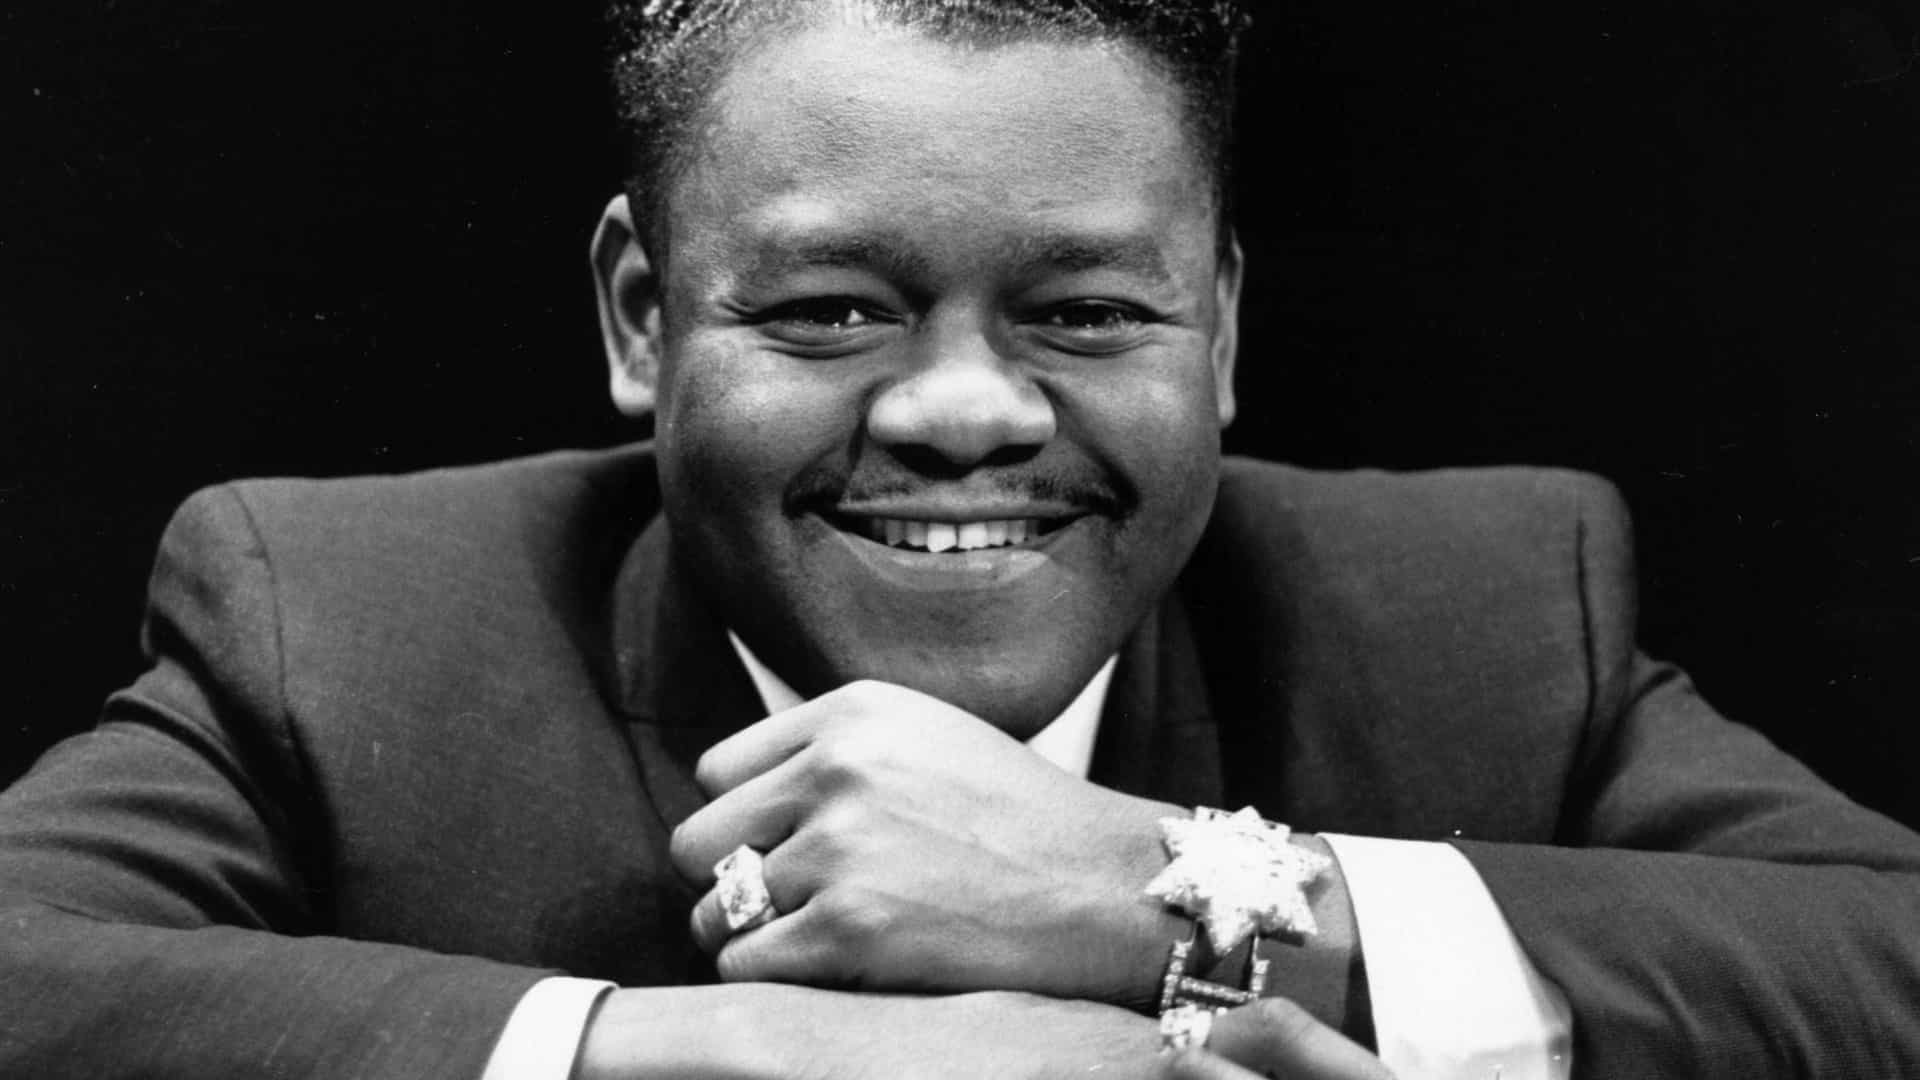 Morre a lenda do rock and roll, Fats Domino